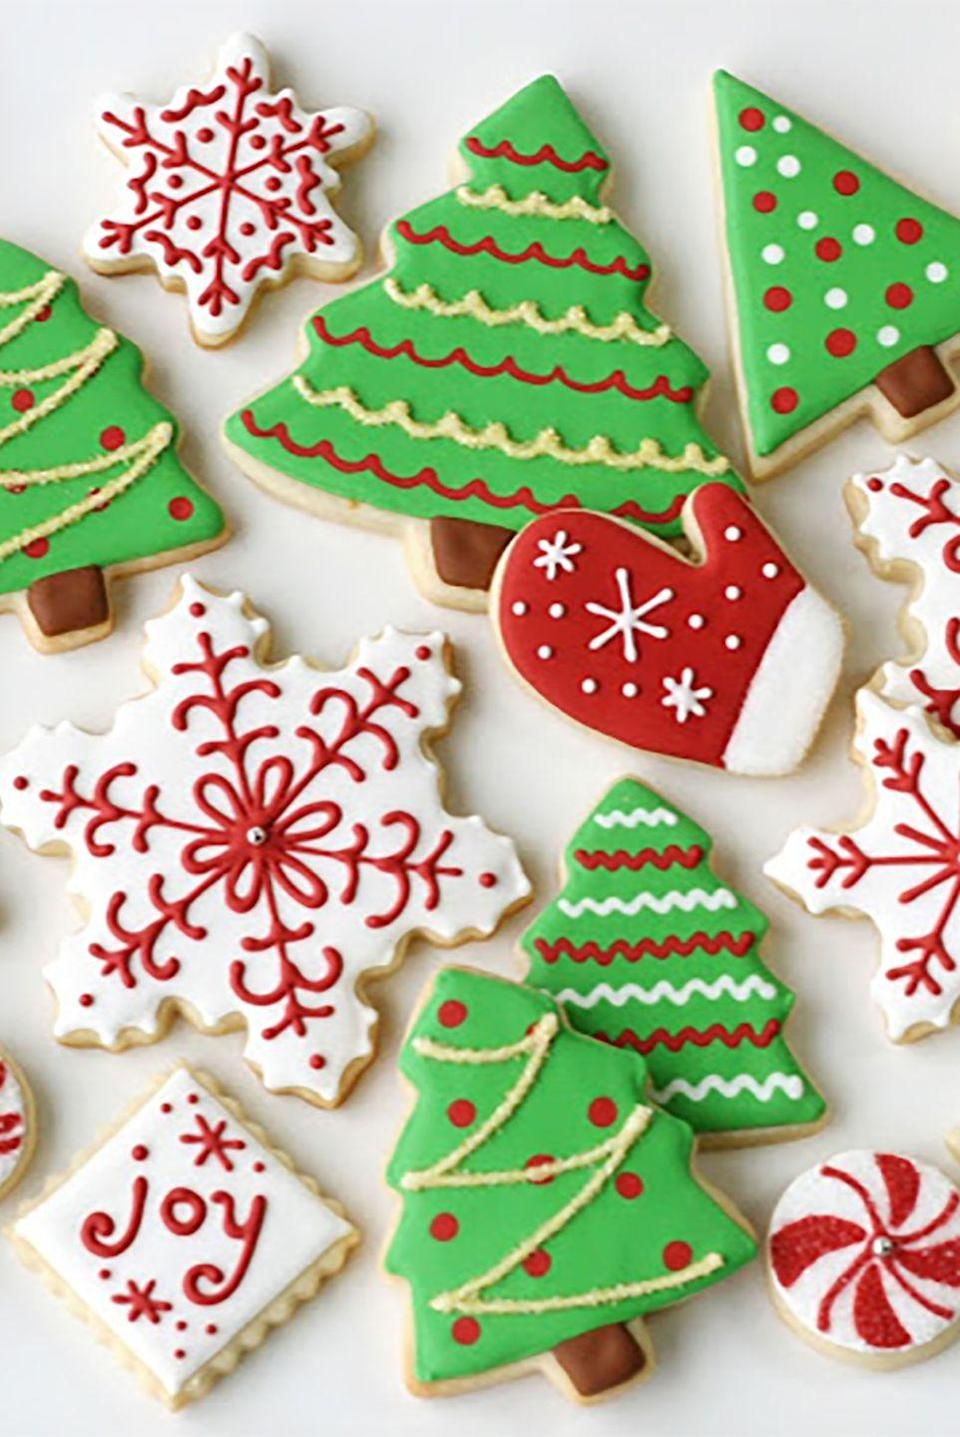 "<p>These festive sugar cookies are sure to be a holiday hit with your friends and family. </p><p><strong>Get the recipe at <a href=""http://www.glorioustreats.com/2010/12/christmas-cookies-galore.html"" rel=""nofollow noopener"" target=""_blank"" data-ylk=""slk:Glorious Treats"" class=""link rapid-noclick-resp"">Glorious Treats</a>.</strong></p>"